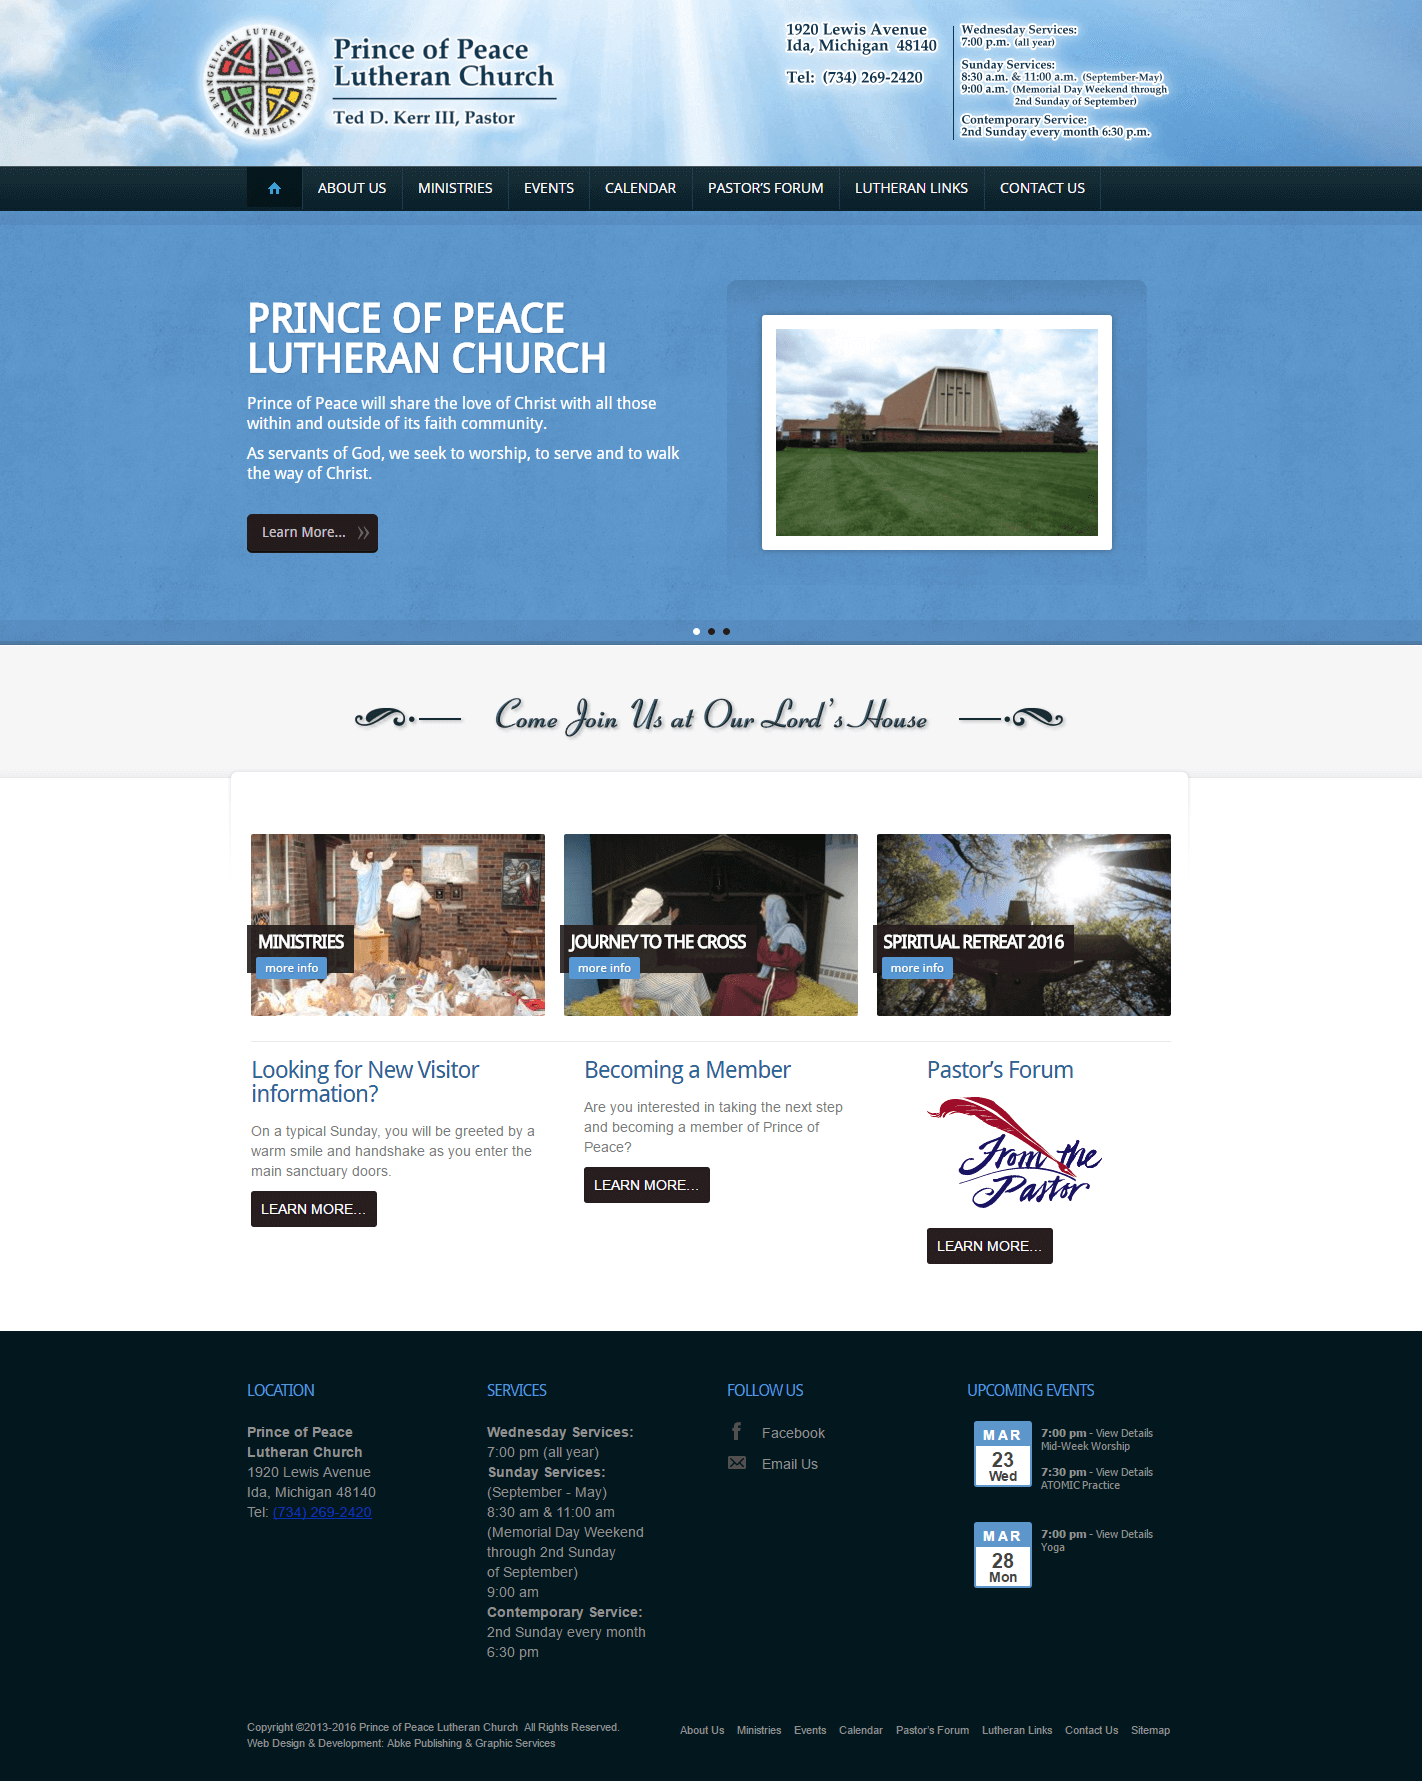 Prince of Peace Ida - Website Design & Development by Abke Design